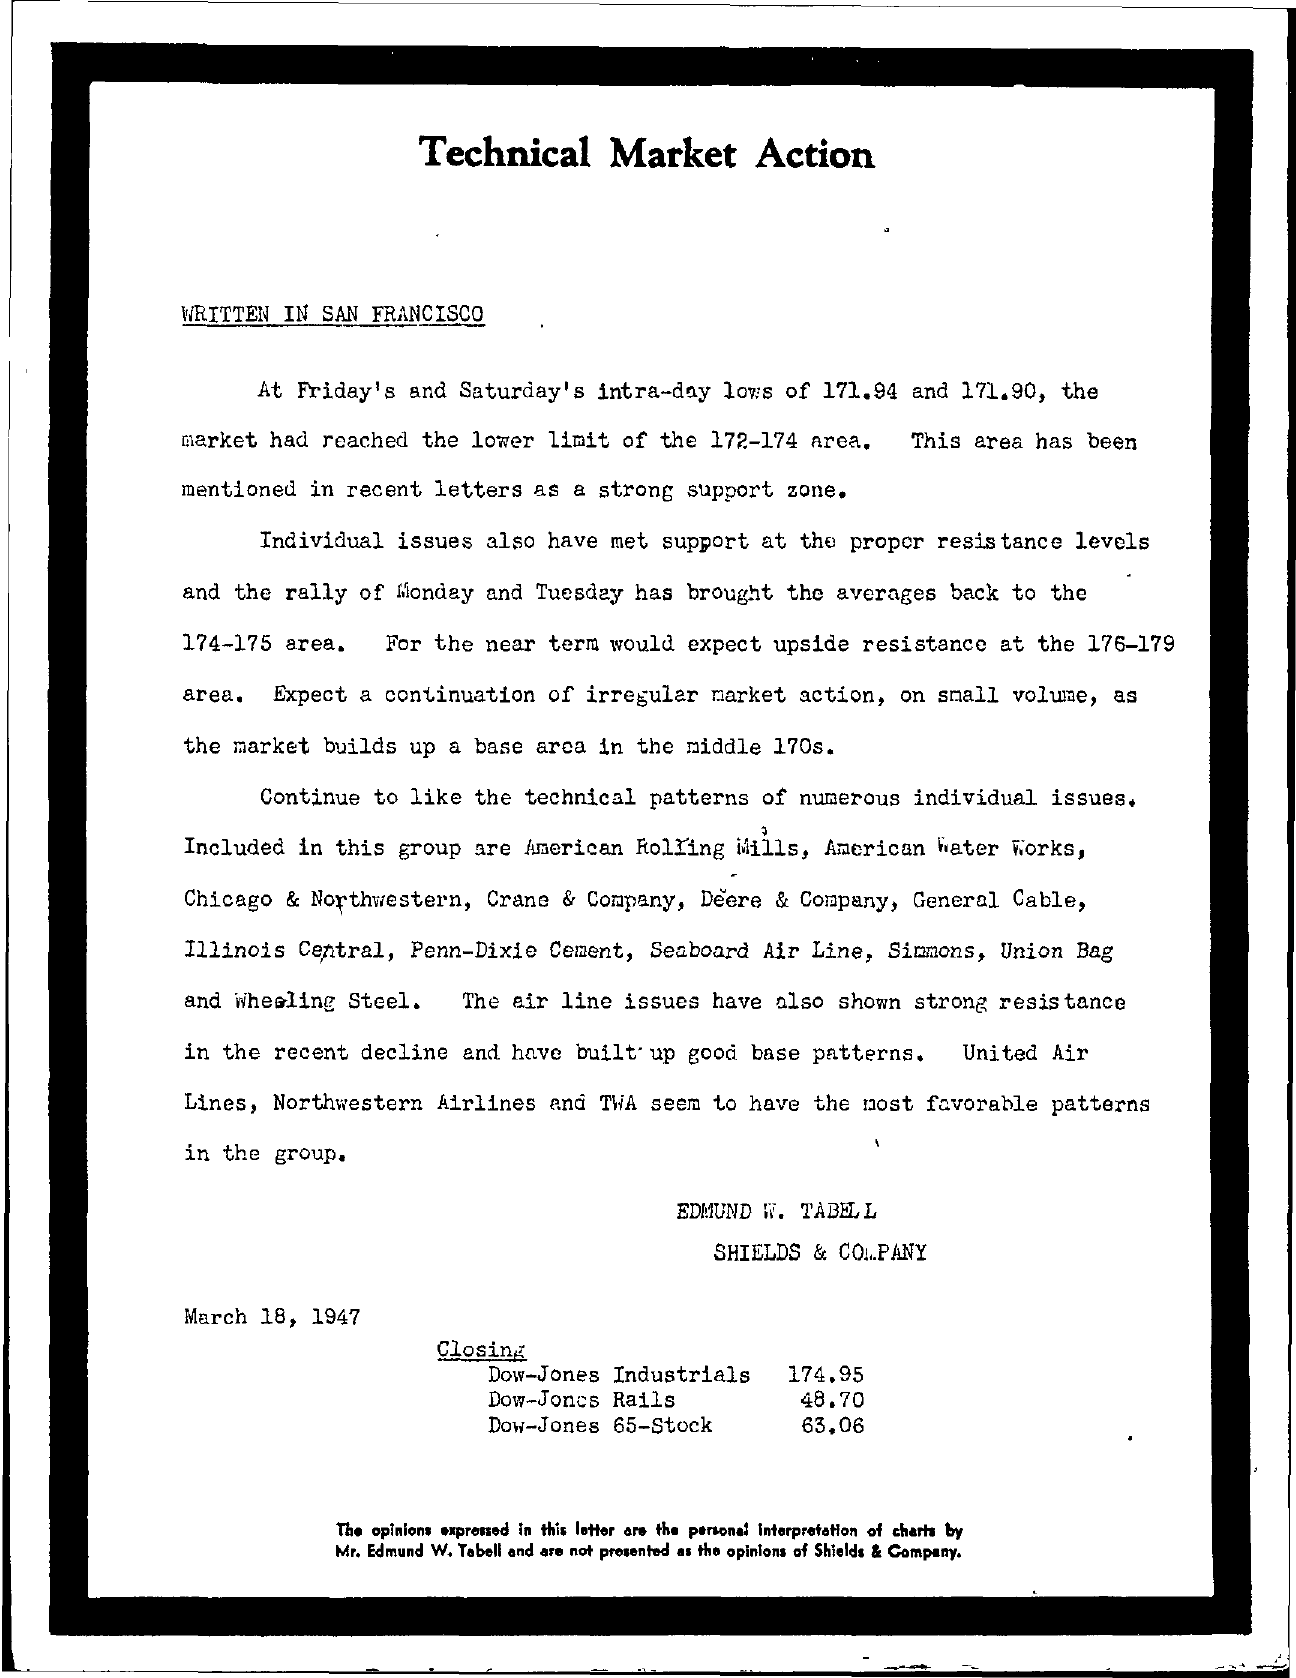 Tabell's Market Letter - March 18, 1947